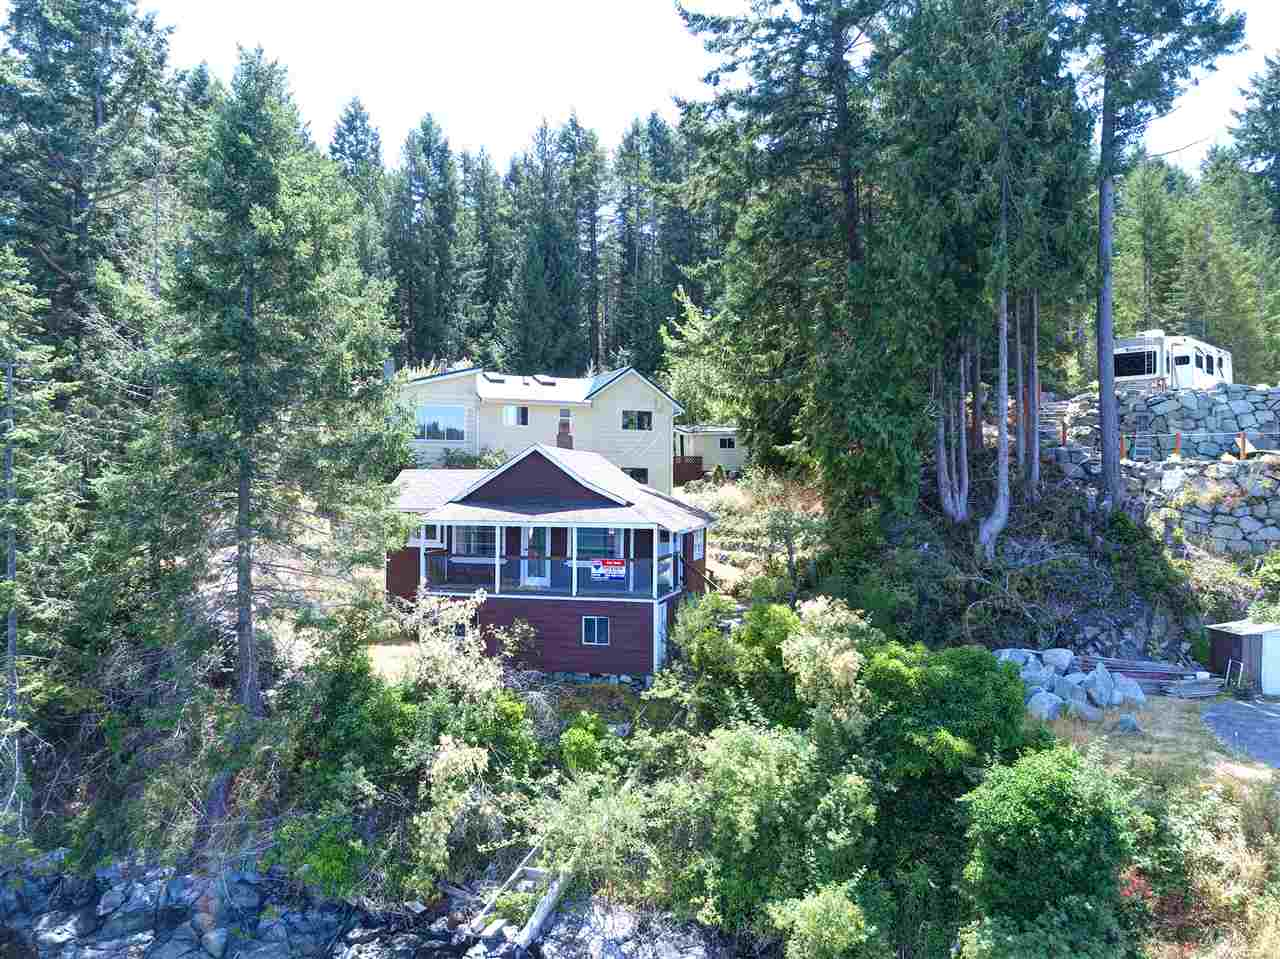 Photo 2: Photos: 13038 HASSAN Road in Madeira Park: Pender Harbour Egmont House for sale (Sunshine Coast)  : MLS® # R2187196